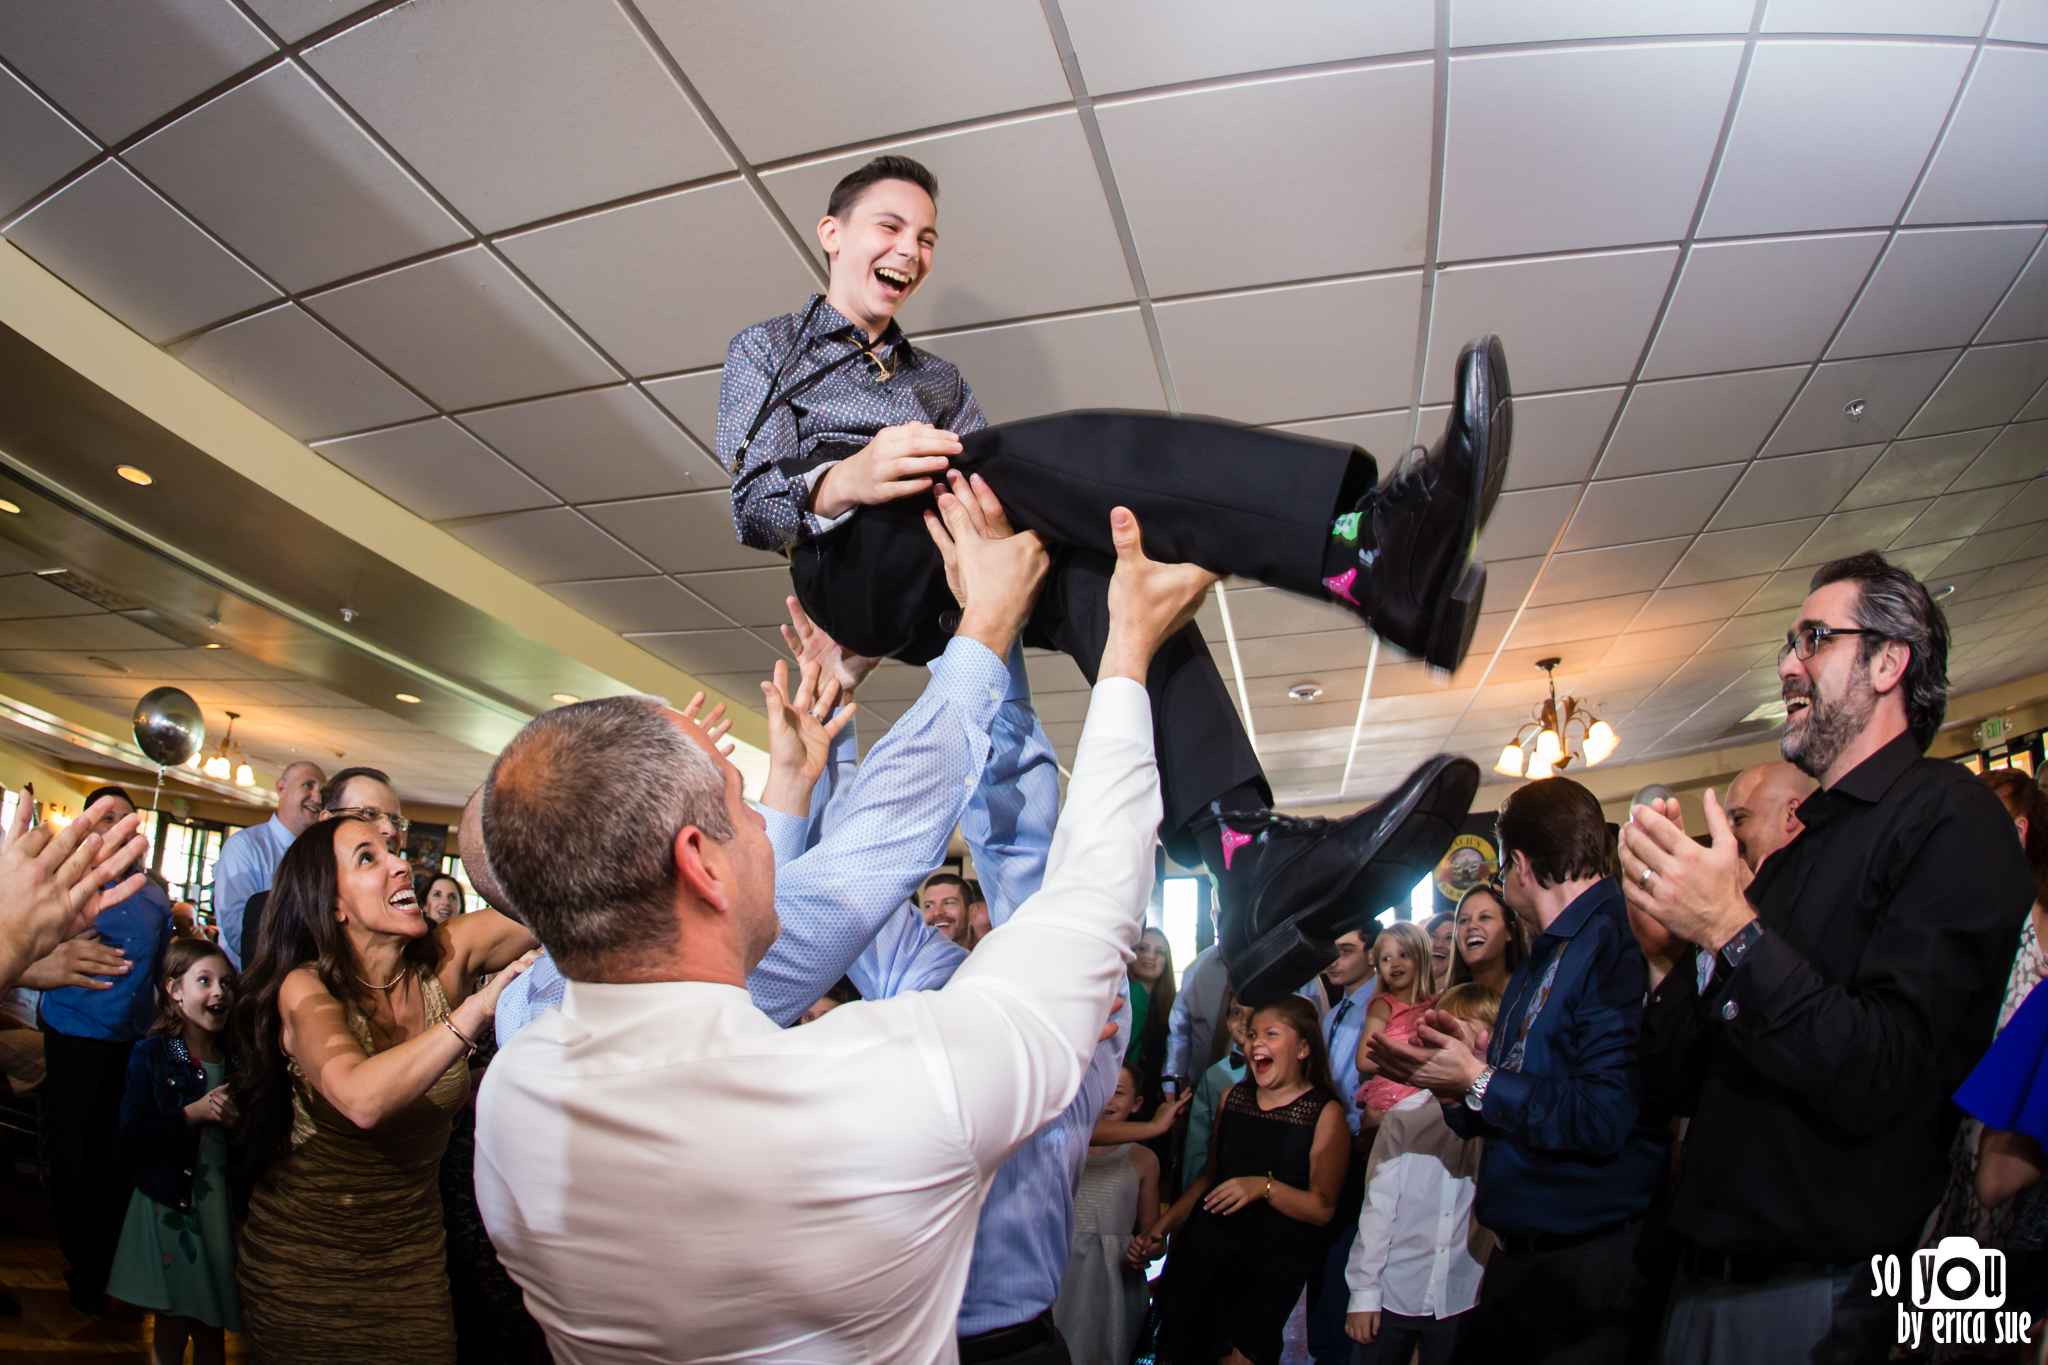 bar-mitzvah-pembroke-lakes-golf-country-club-mitzvah-photography-so-you-by-erica-sue-26.jpg